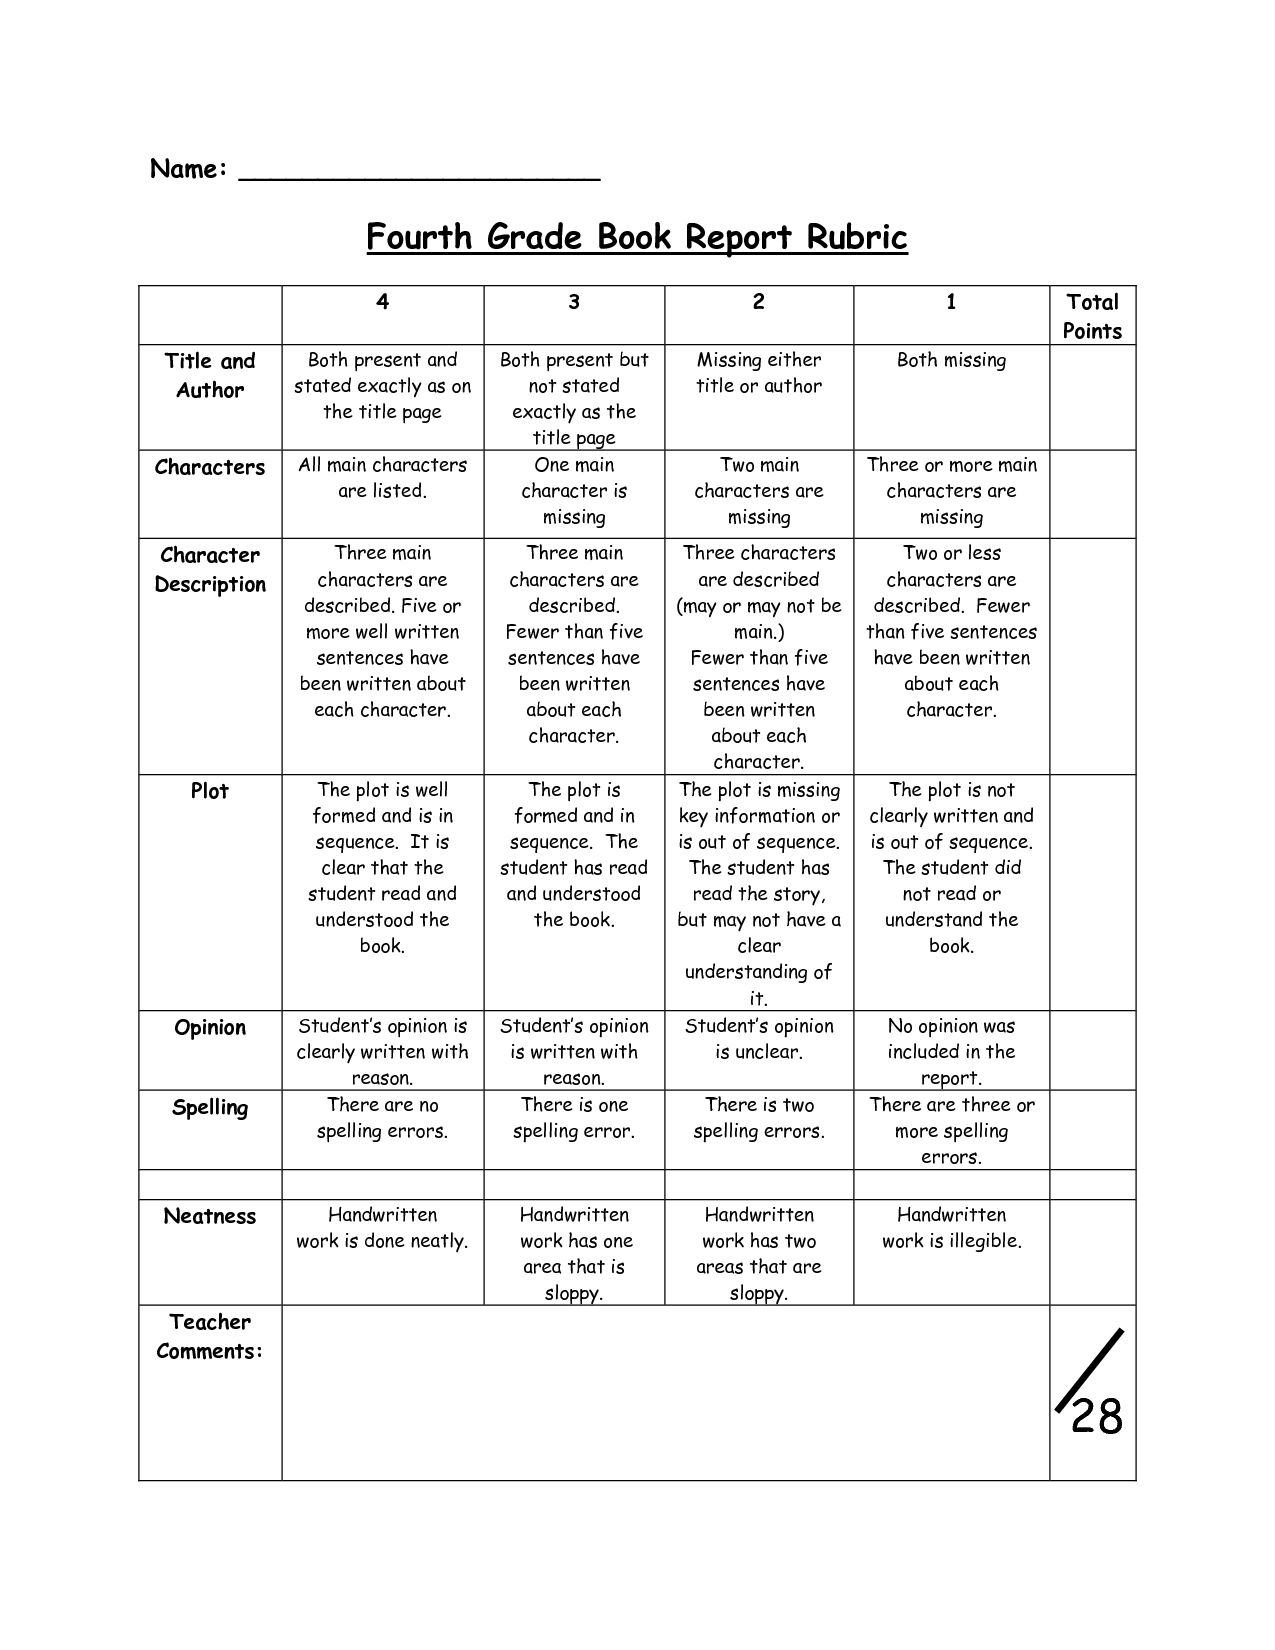 iRubric: Grade 4 Social Studies Research Project No. 1 rubric